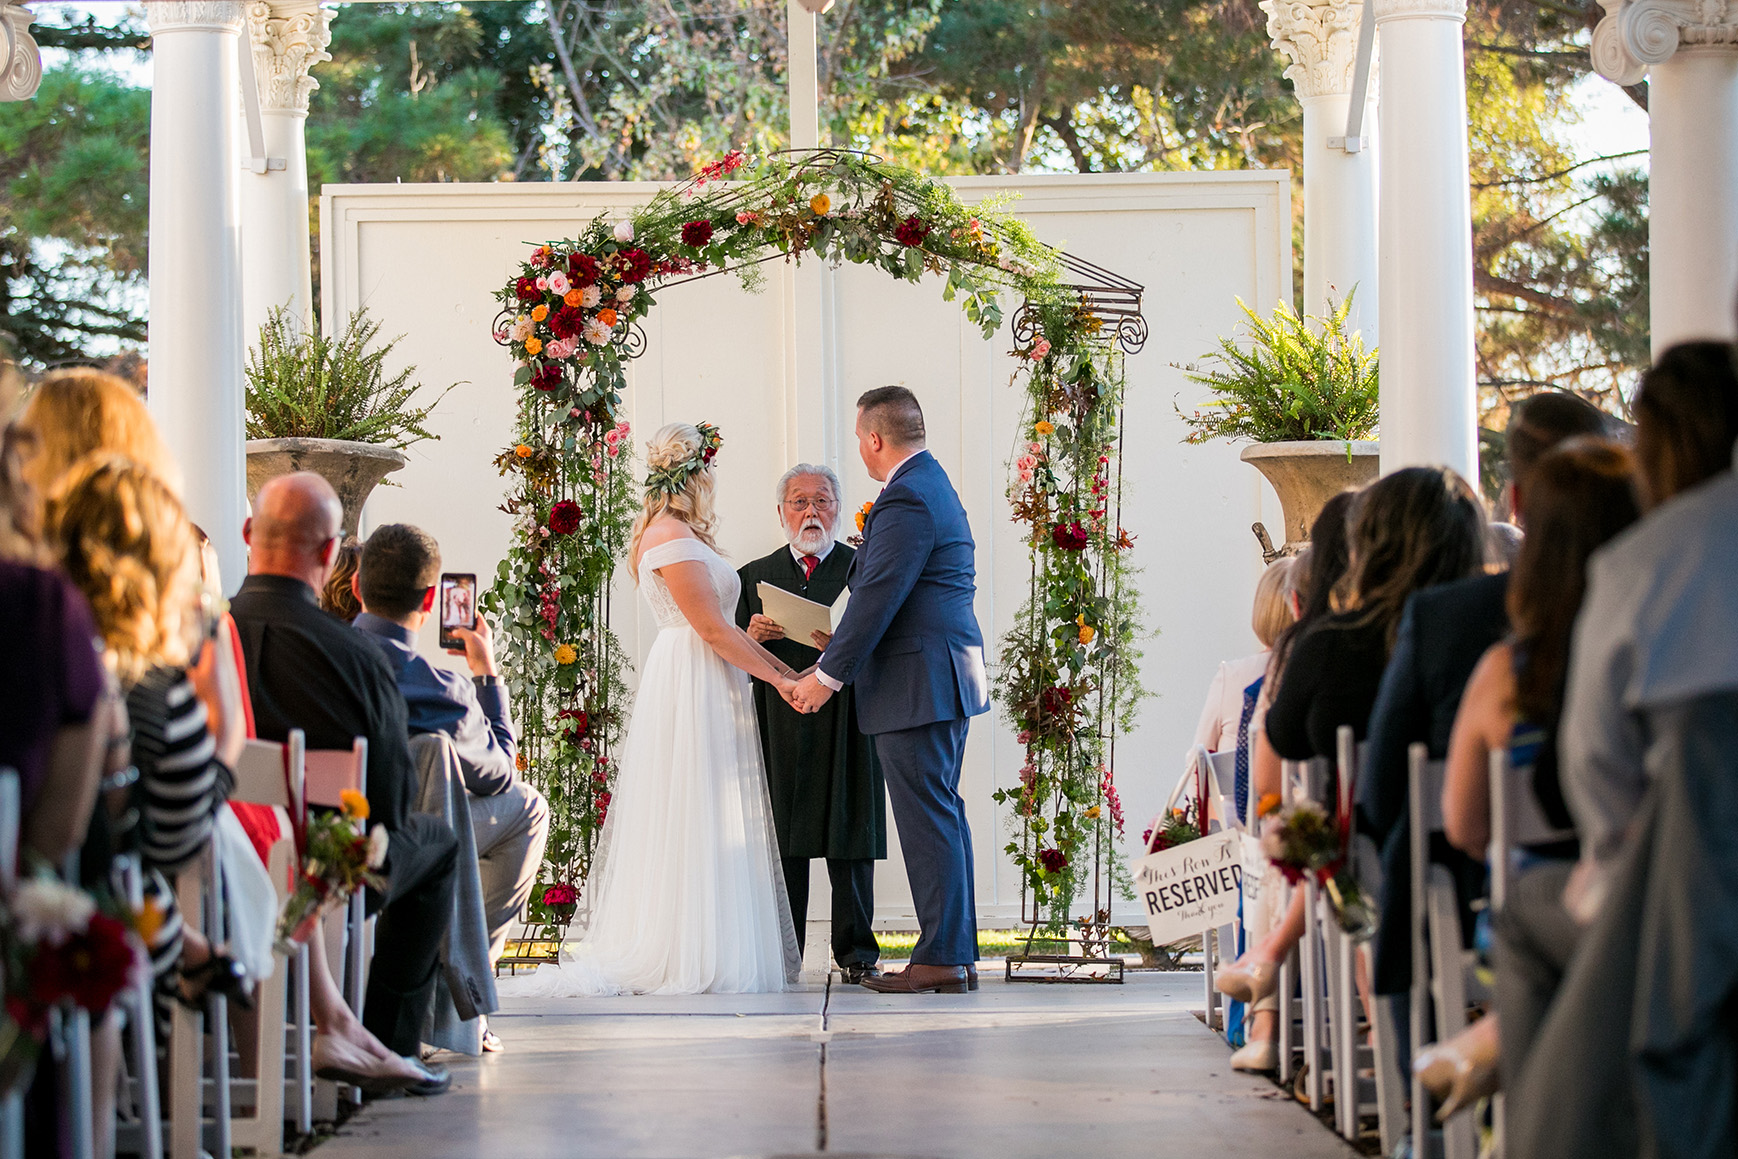 Beautiful vows at this historic venue - Jefferson Street Mansion - Benicia, California - Solano County - Wedgewood Weddings